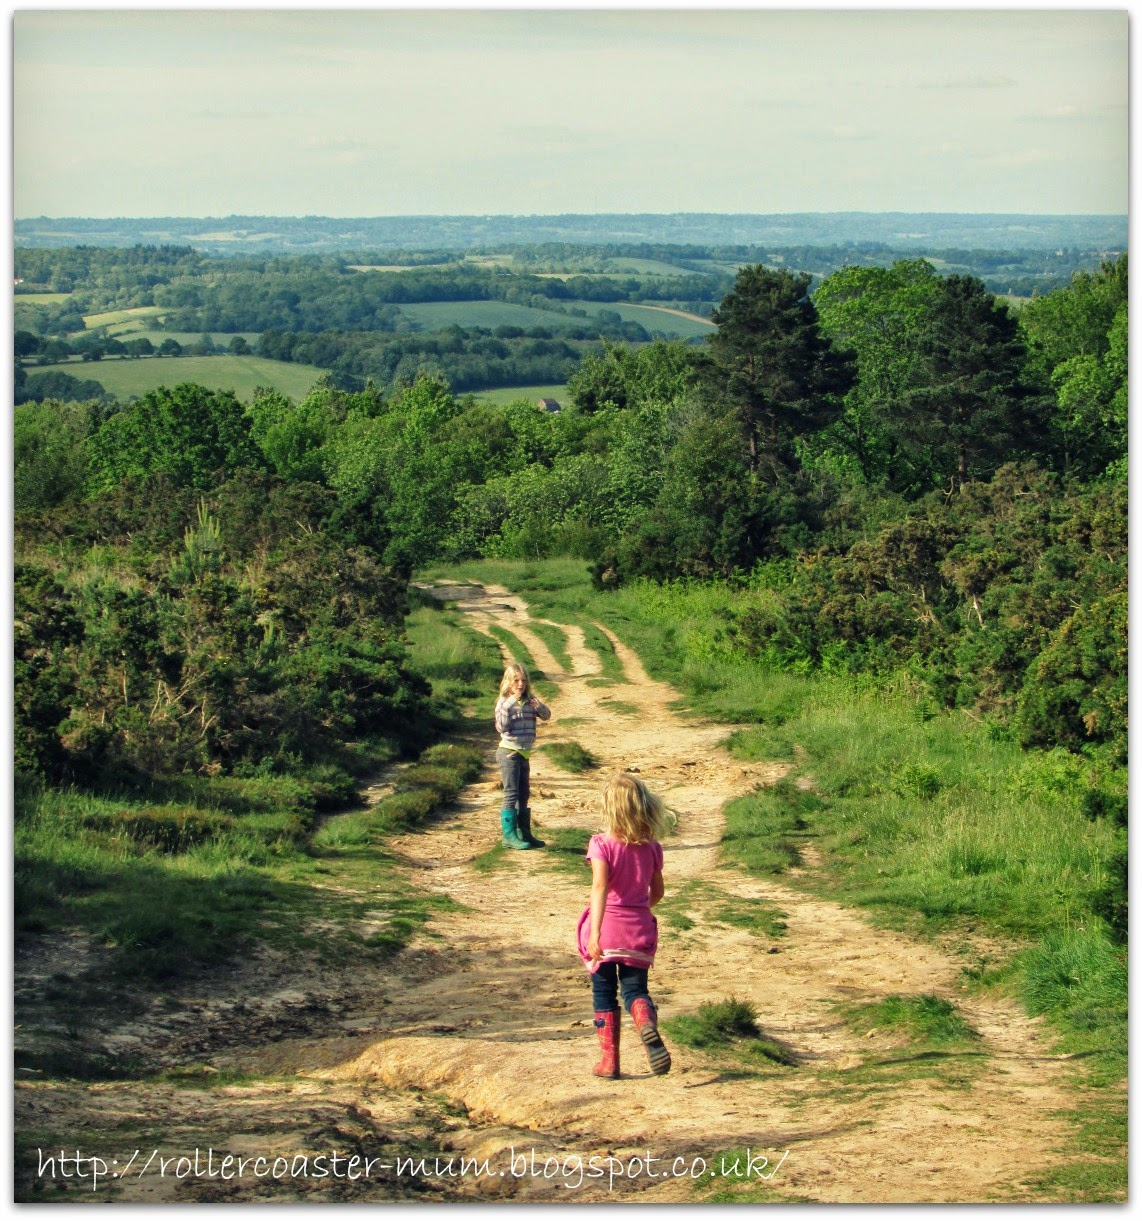 Typical Winnie the Pooh country, Ashdown Forest